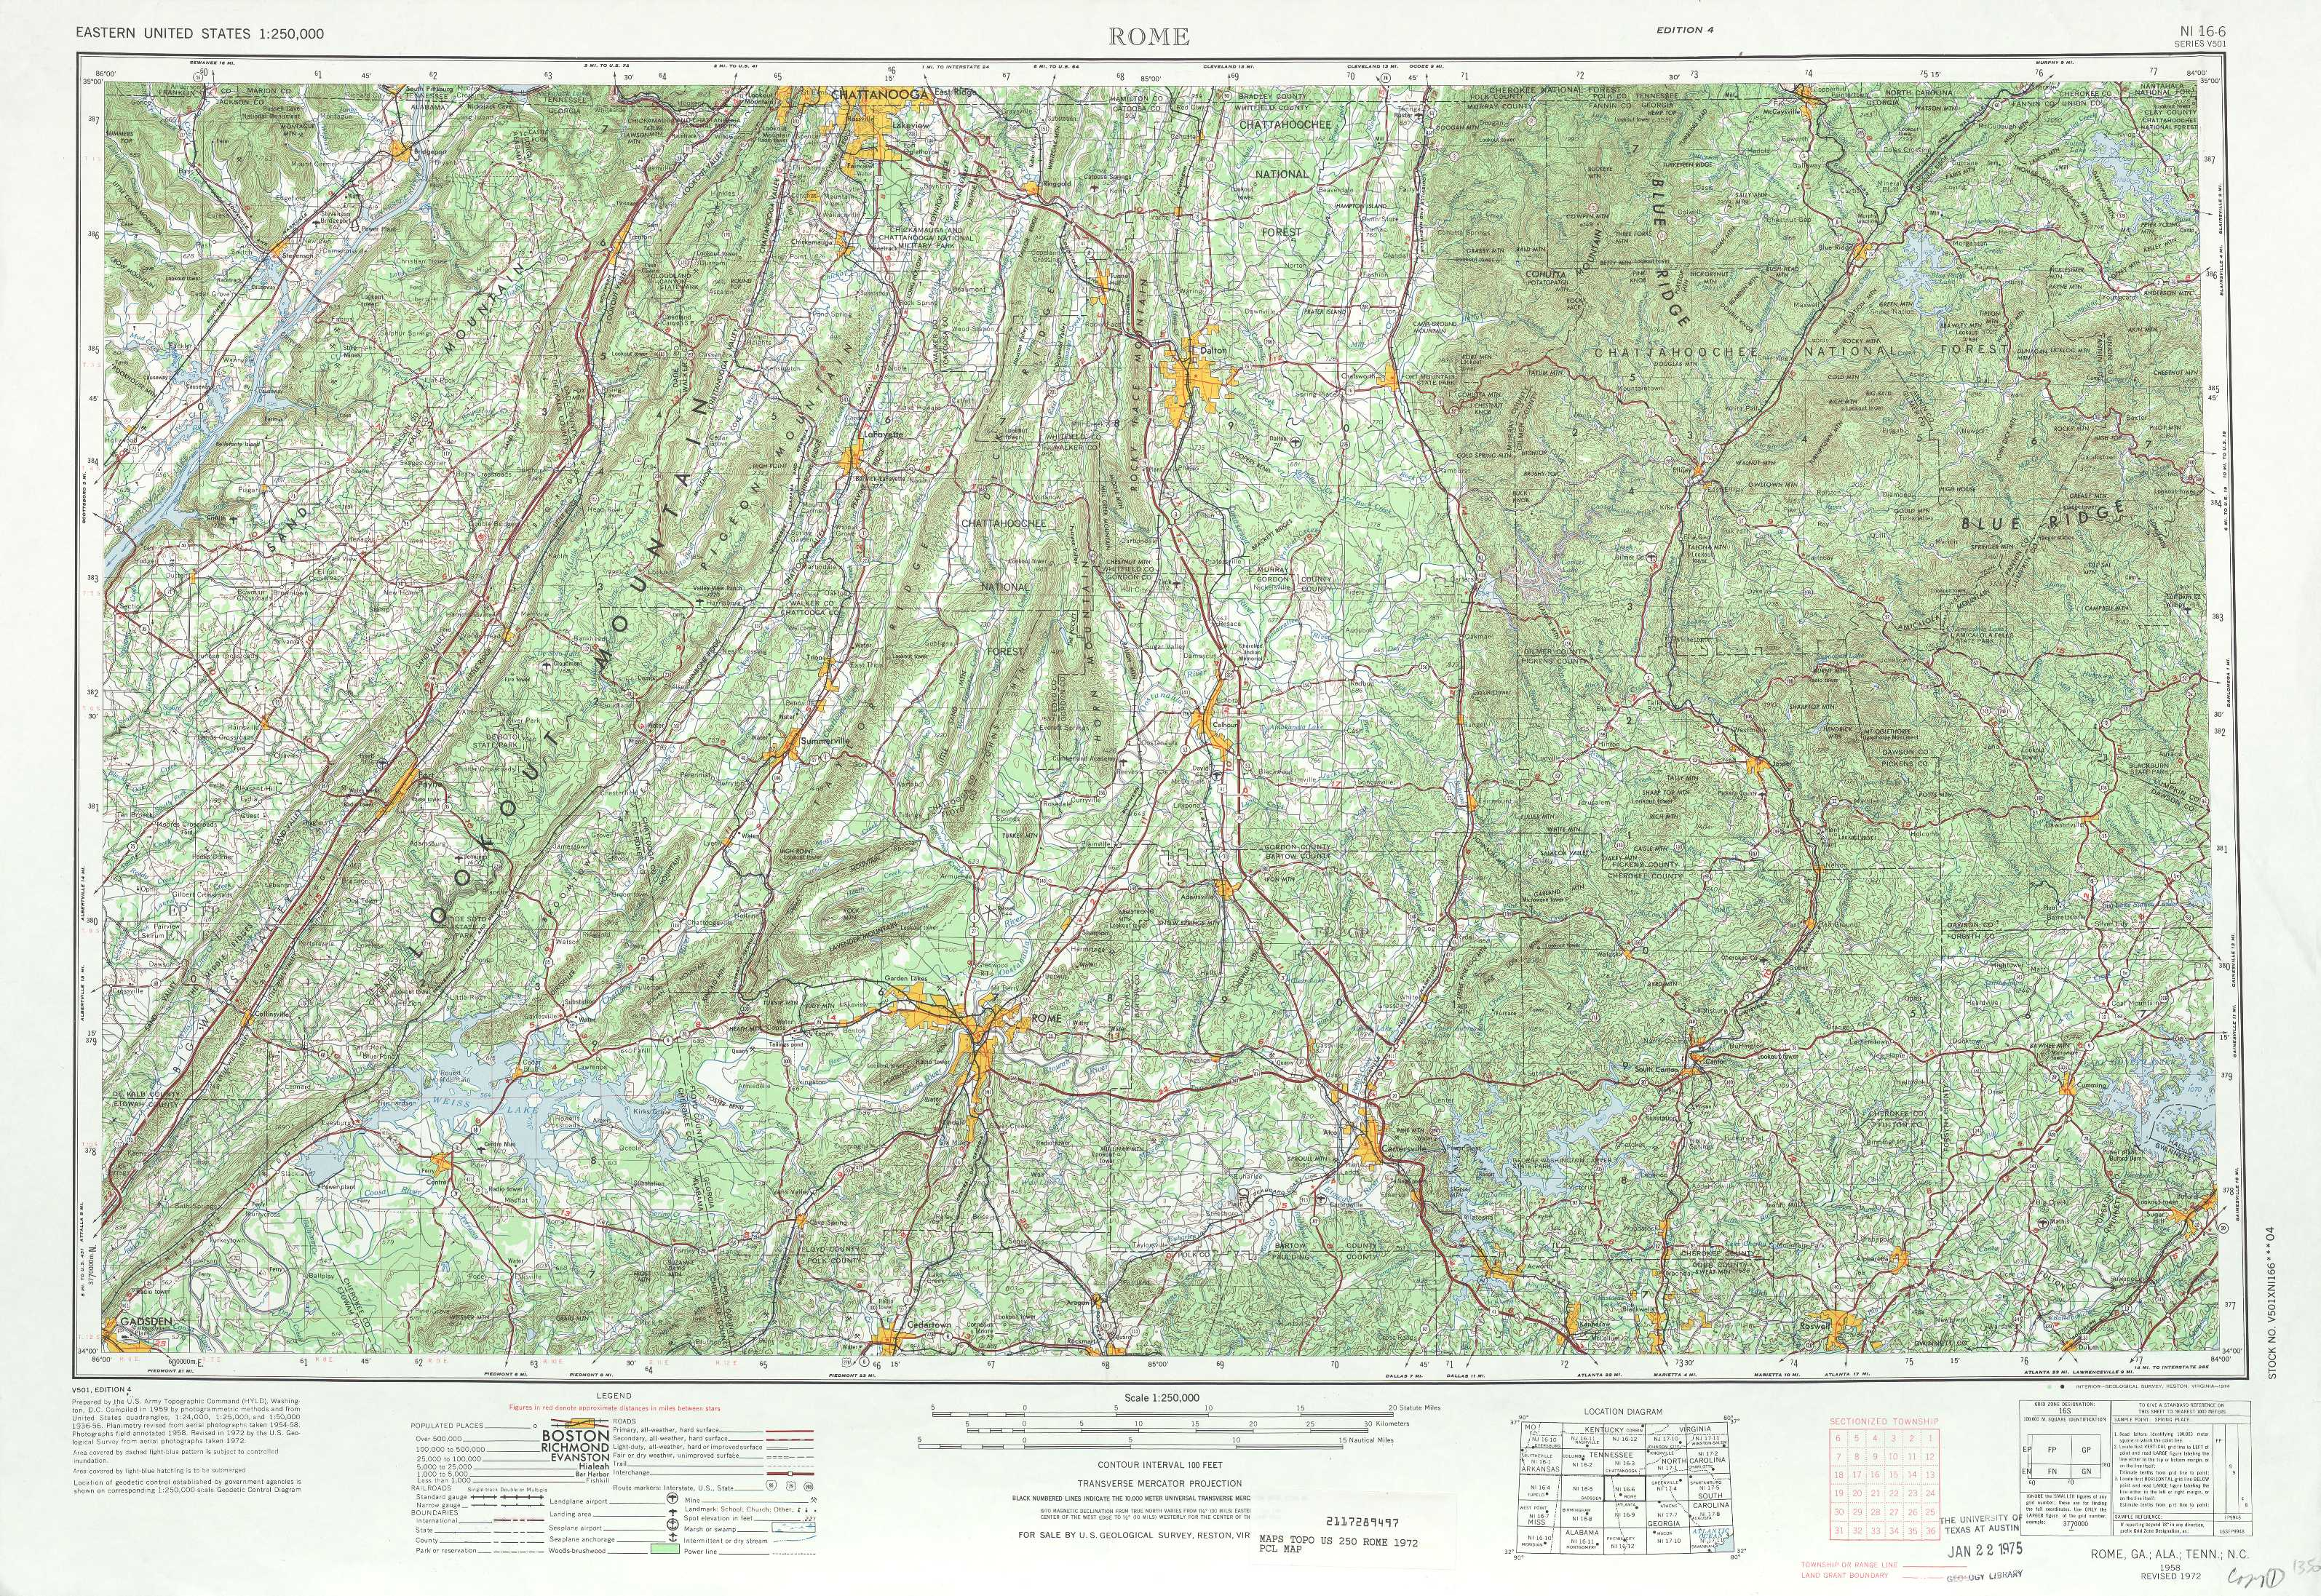 Rome Topographic Maps GA AL USGS Topo Quad A At - Georgia map rome